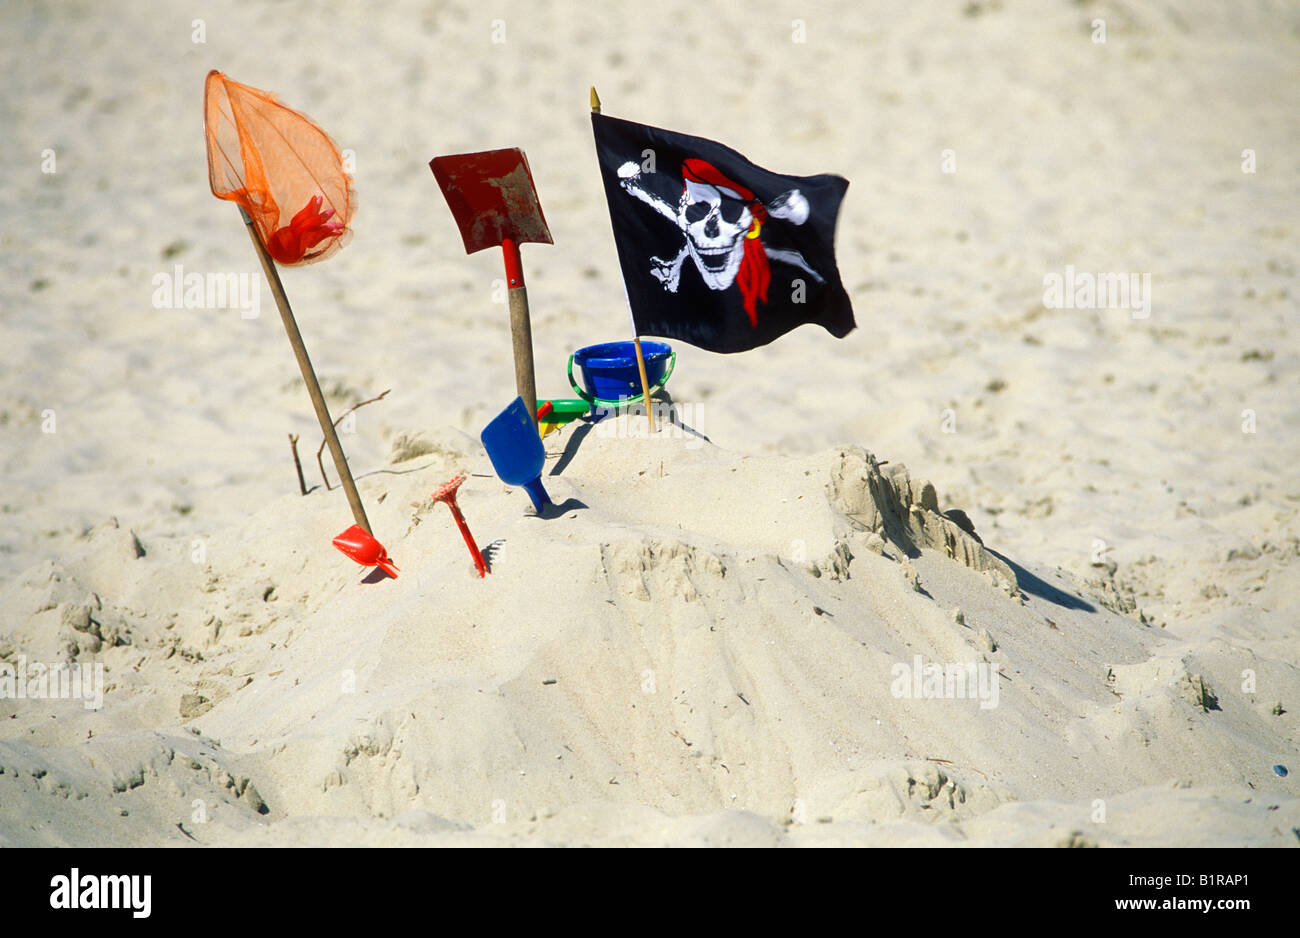 sand toys and pirate´s flag at a beach - Stock Image